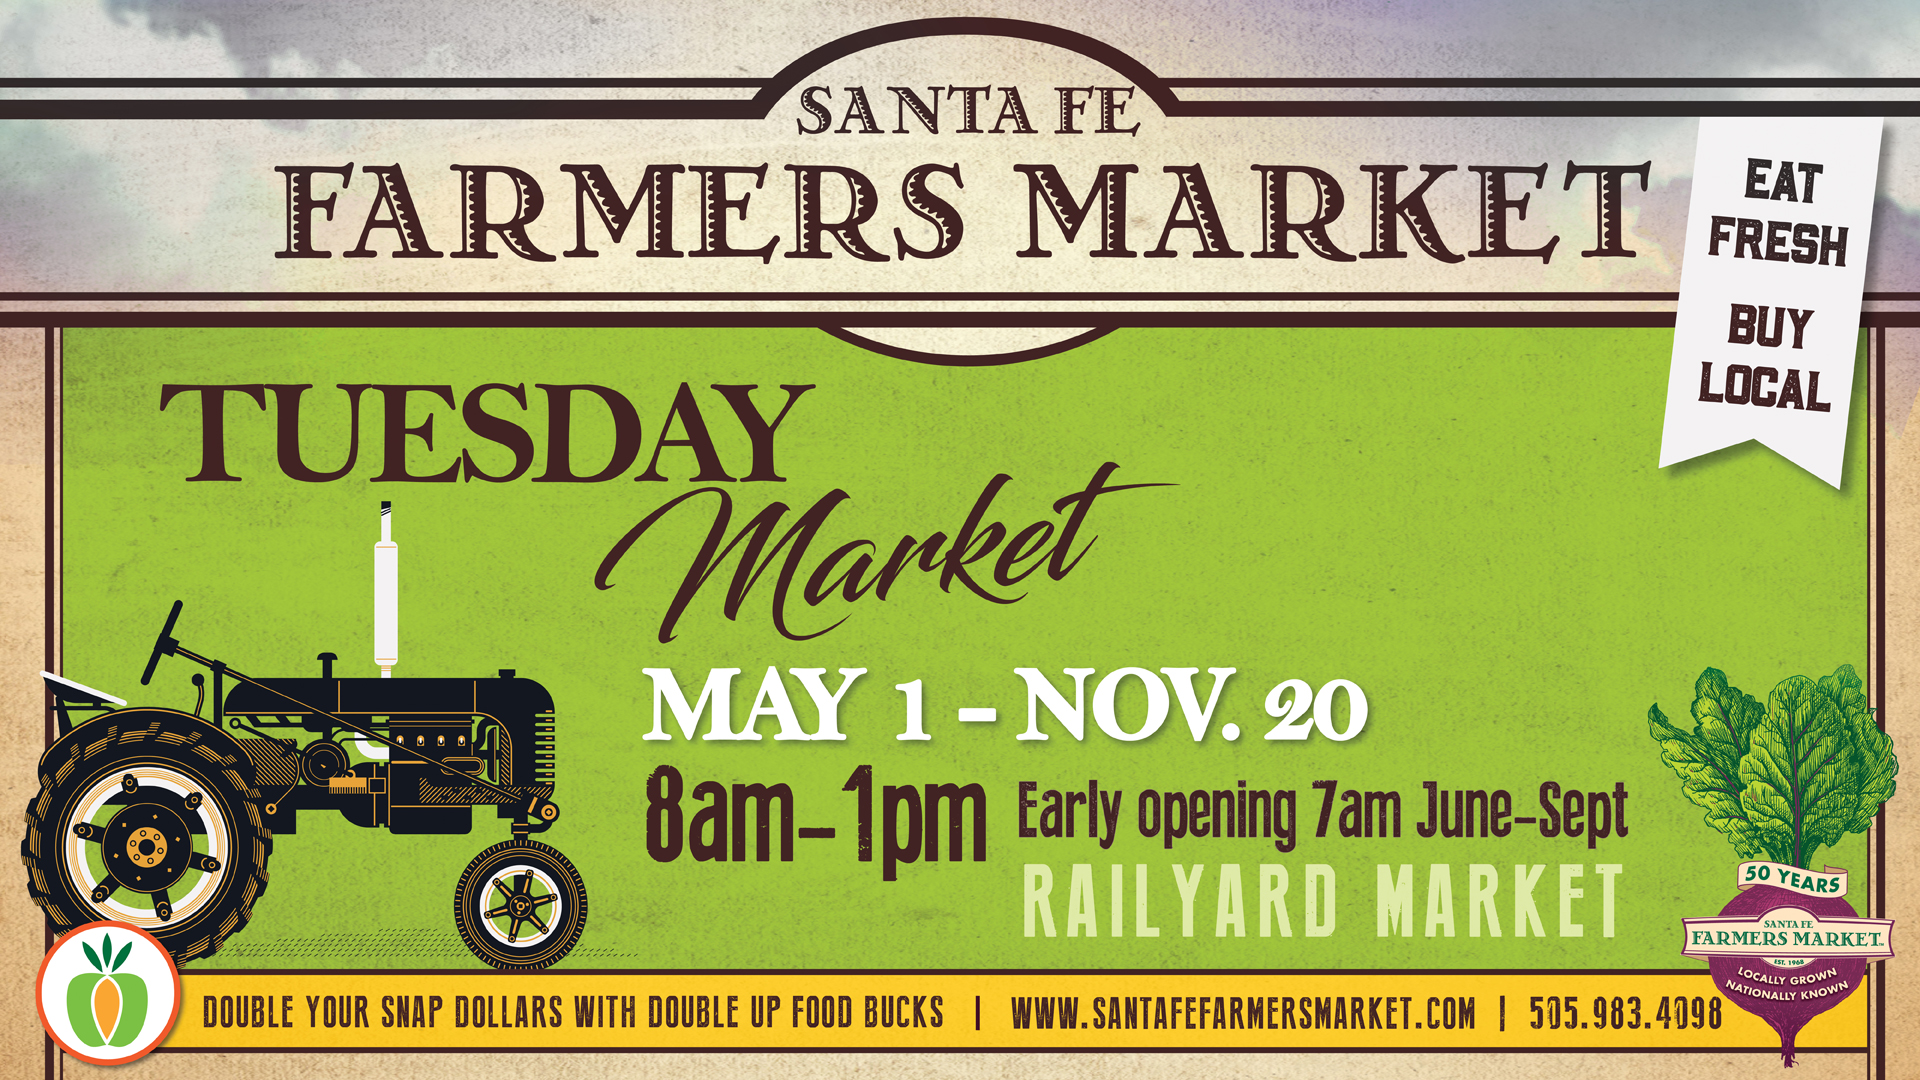 TUESDAY FARMERS MARKET @ Santa Fe Farmers Market | Santa Fe | New Mexico | United States